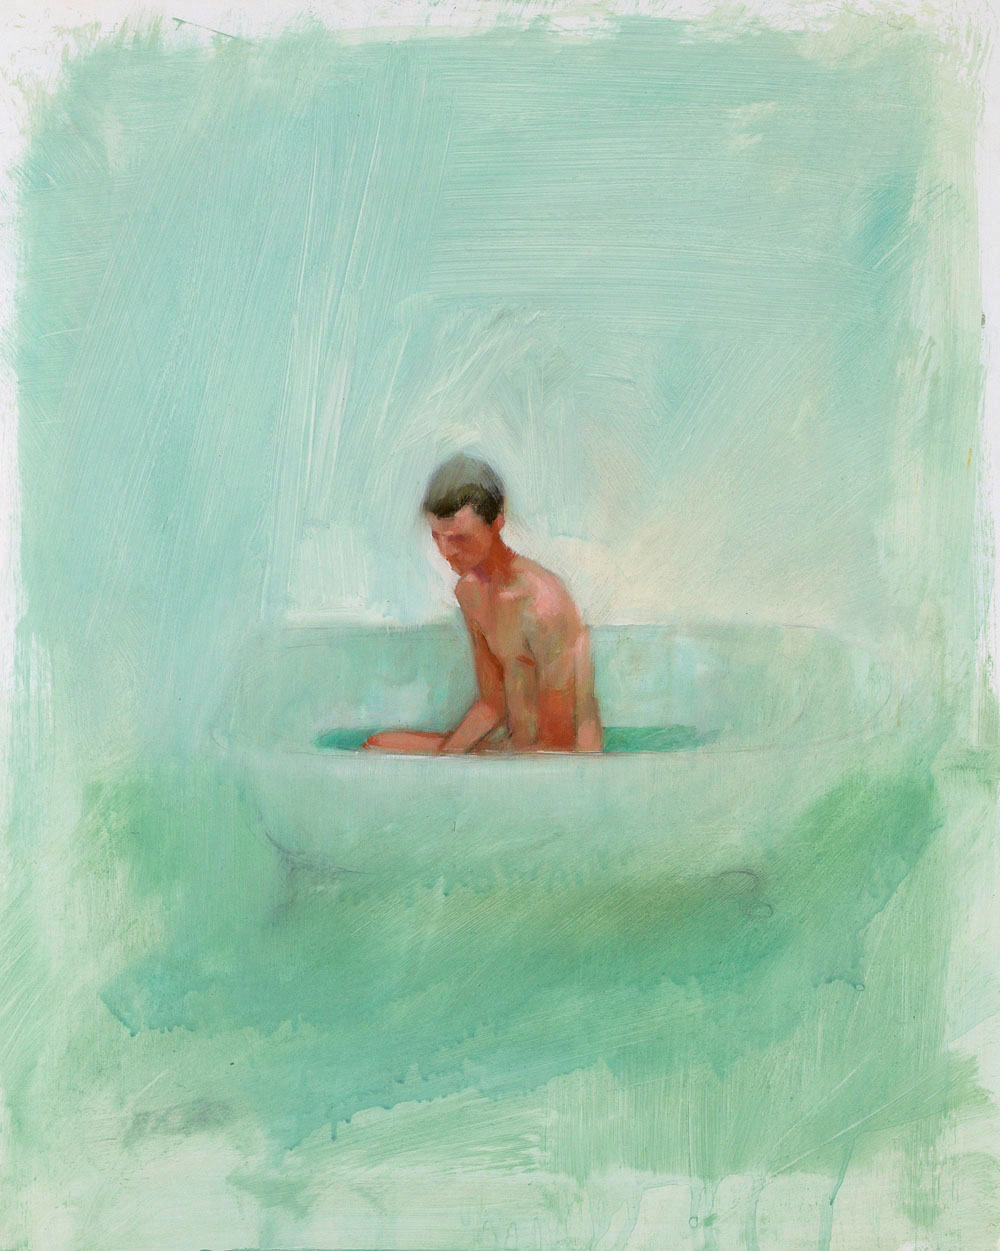 Bath Study No. 2   20 x 16 inches  oil on TerraSkin